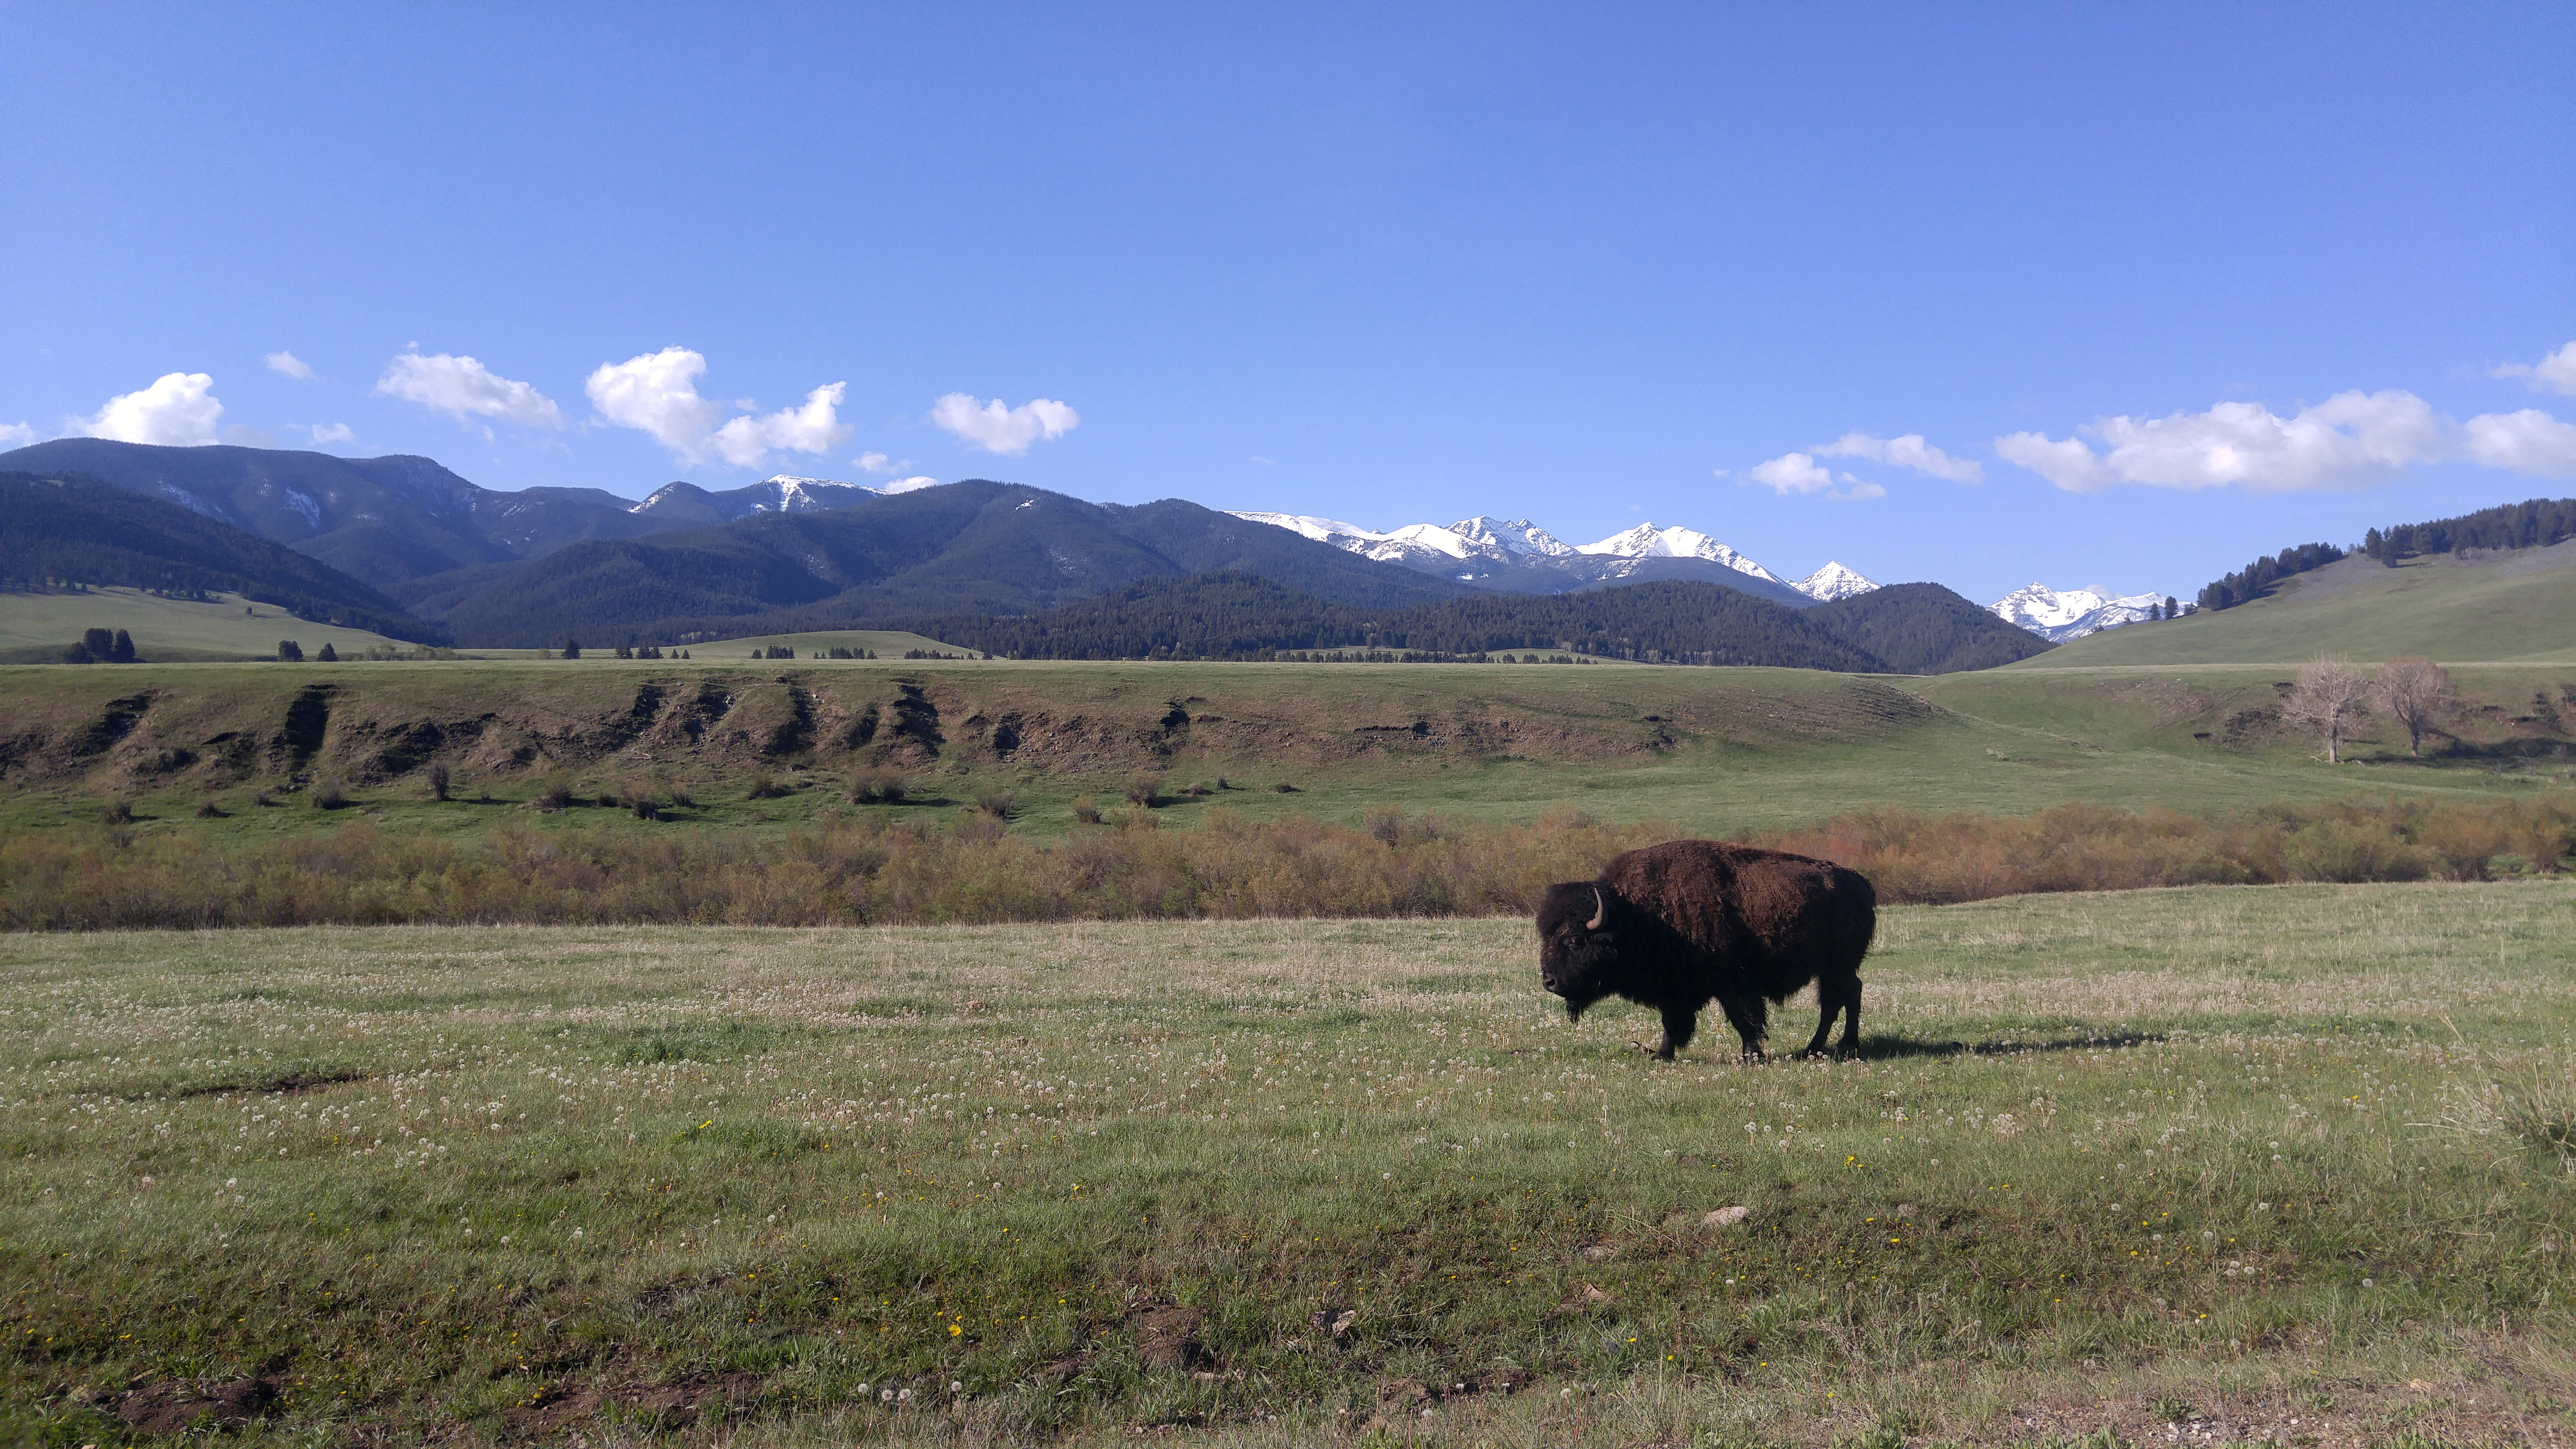 Bison on the plains bordering the Montana Mountains